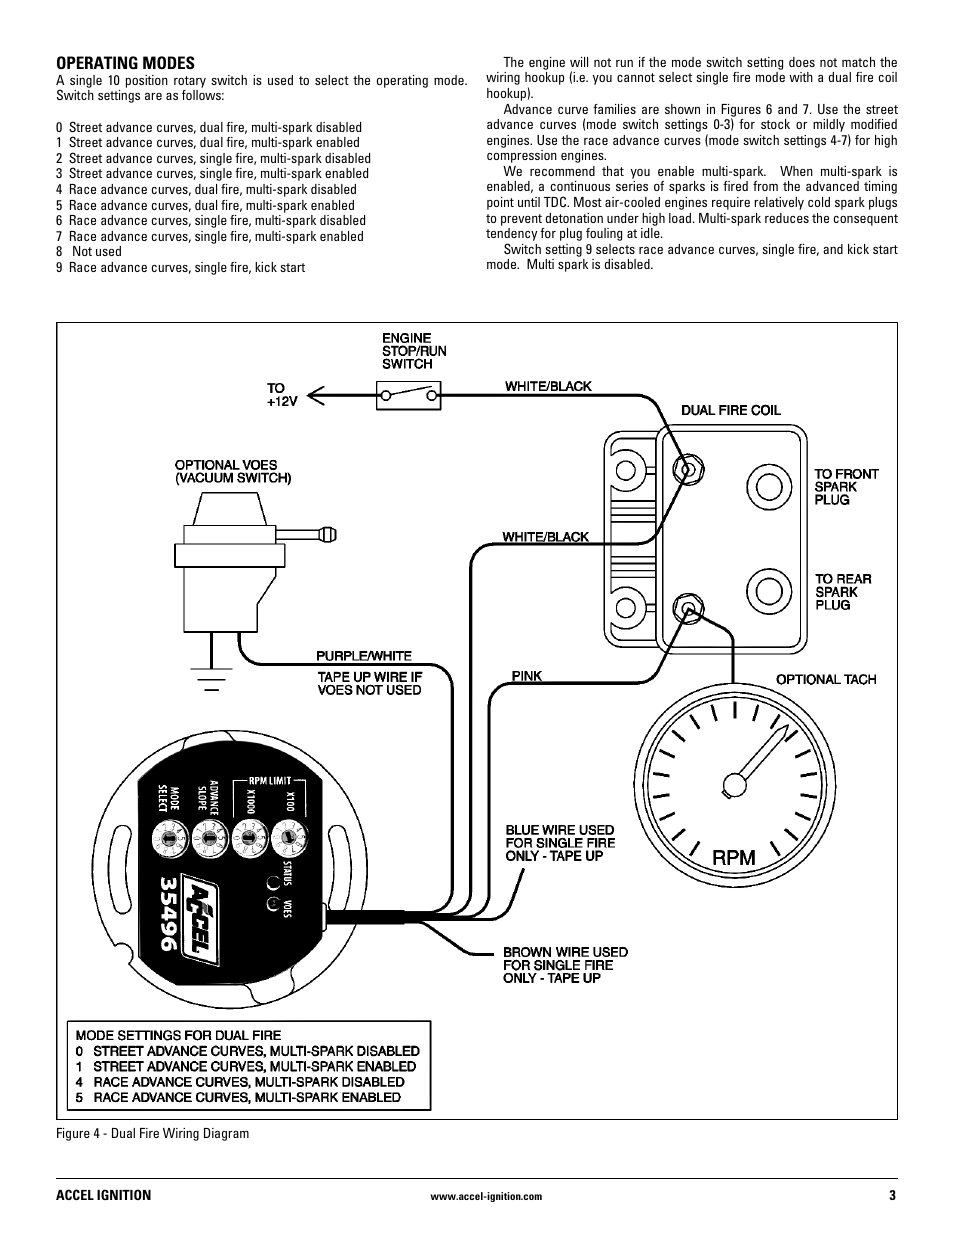 Chevy Coil Wiring Diagram Auto Accel Distributor Trusted 954x1235